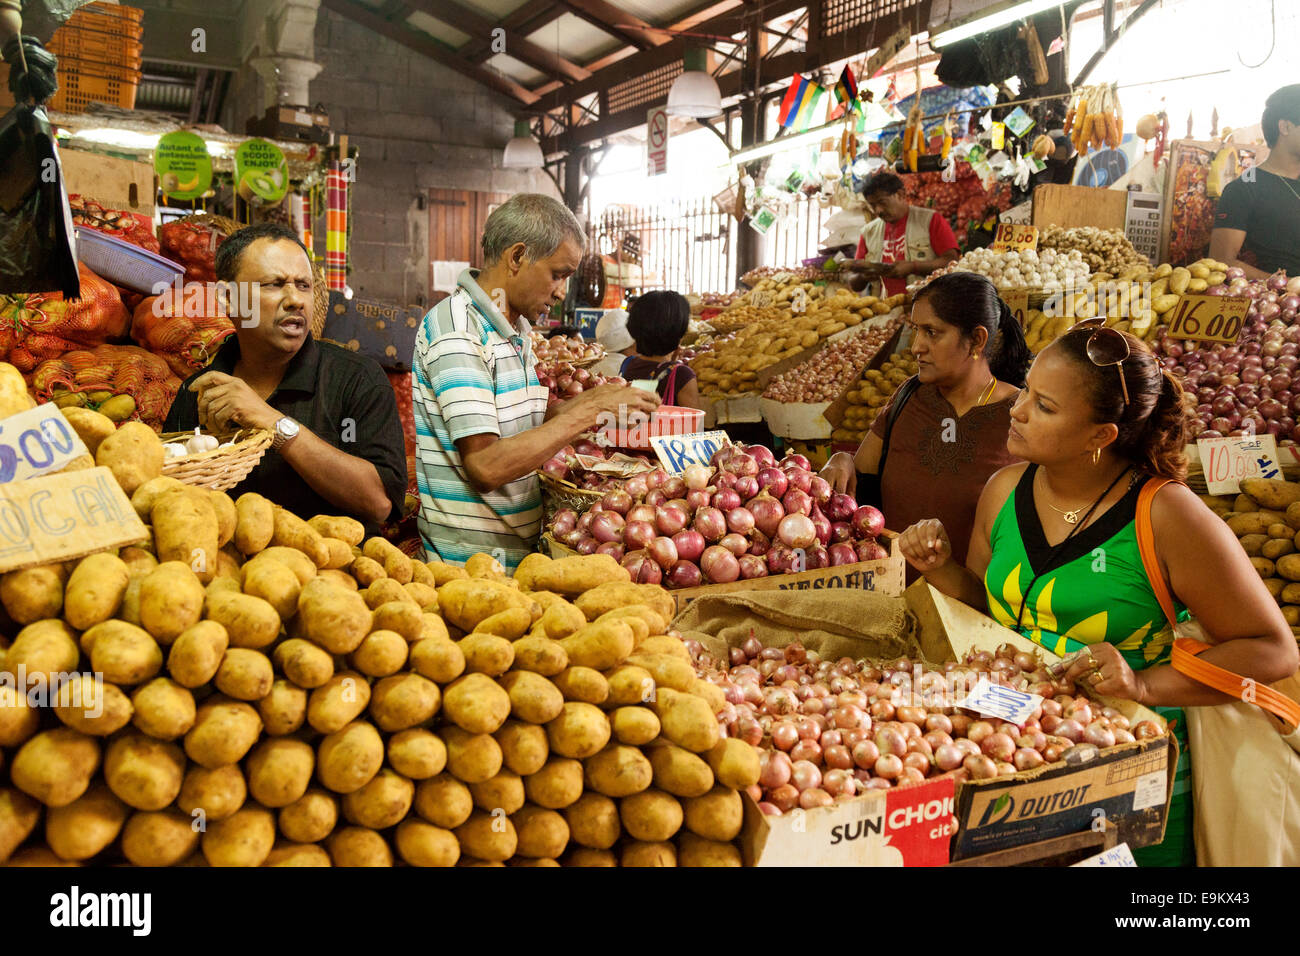 Local people shopping at the indoor food market port louis stock photo royalty free image - Mauritius market port louis ...